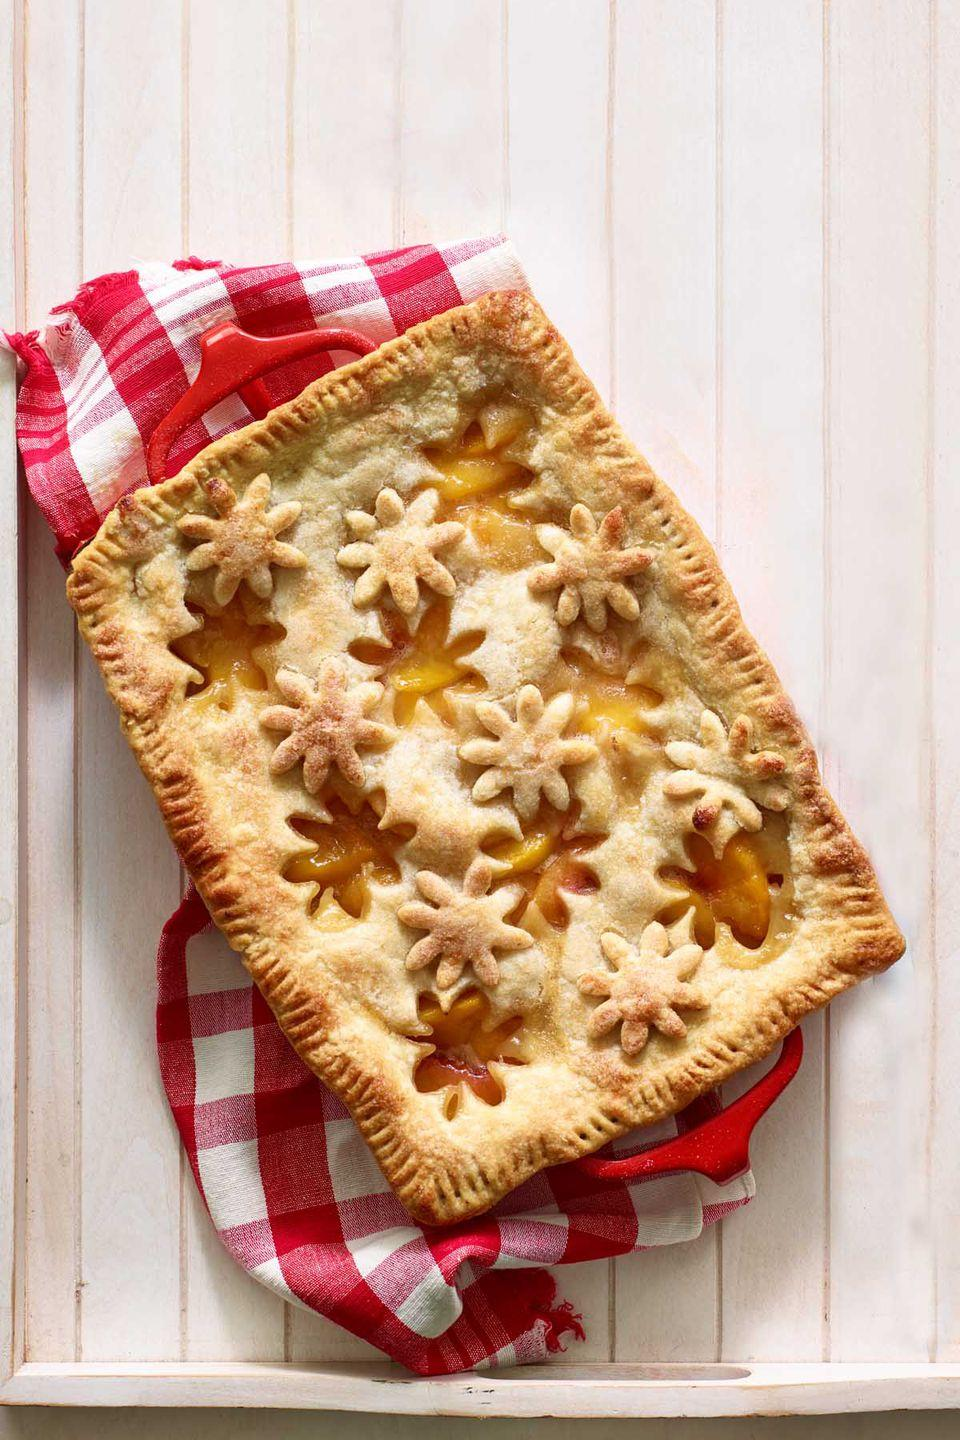 """<p>Create the perfect peach cobbler for your next summer party or <a href=""""https://www.womansday.com/food-recipes/food-drinks/g2196/picnic-food-ideas/"""" rel=""""nofollow noopener"""" target=""""_blank"""" data-ylk=""""slk:date night picnic"""" class=""""link rapid-noclick-resp"""">date night picnic</a>. </p><p><strong><a href=""""https://www.womansday.com/food-recipes/food-drinks/recipes/a12903/texas-peach-cobbler-recipe-wdy0814/"""" rel=""""nofollow noopener"""" target=""""_blank"""" data-ylk=""""slk:Get the recipe."""" class=""""link rapid-noclick-resp"""">Get the recipe.</a></strong></p>"""